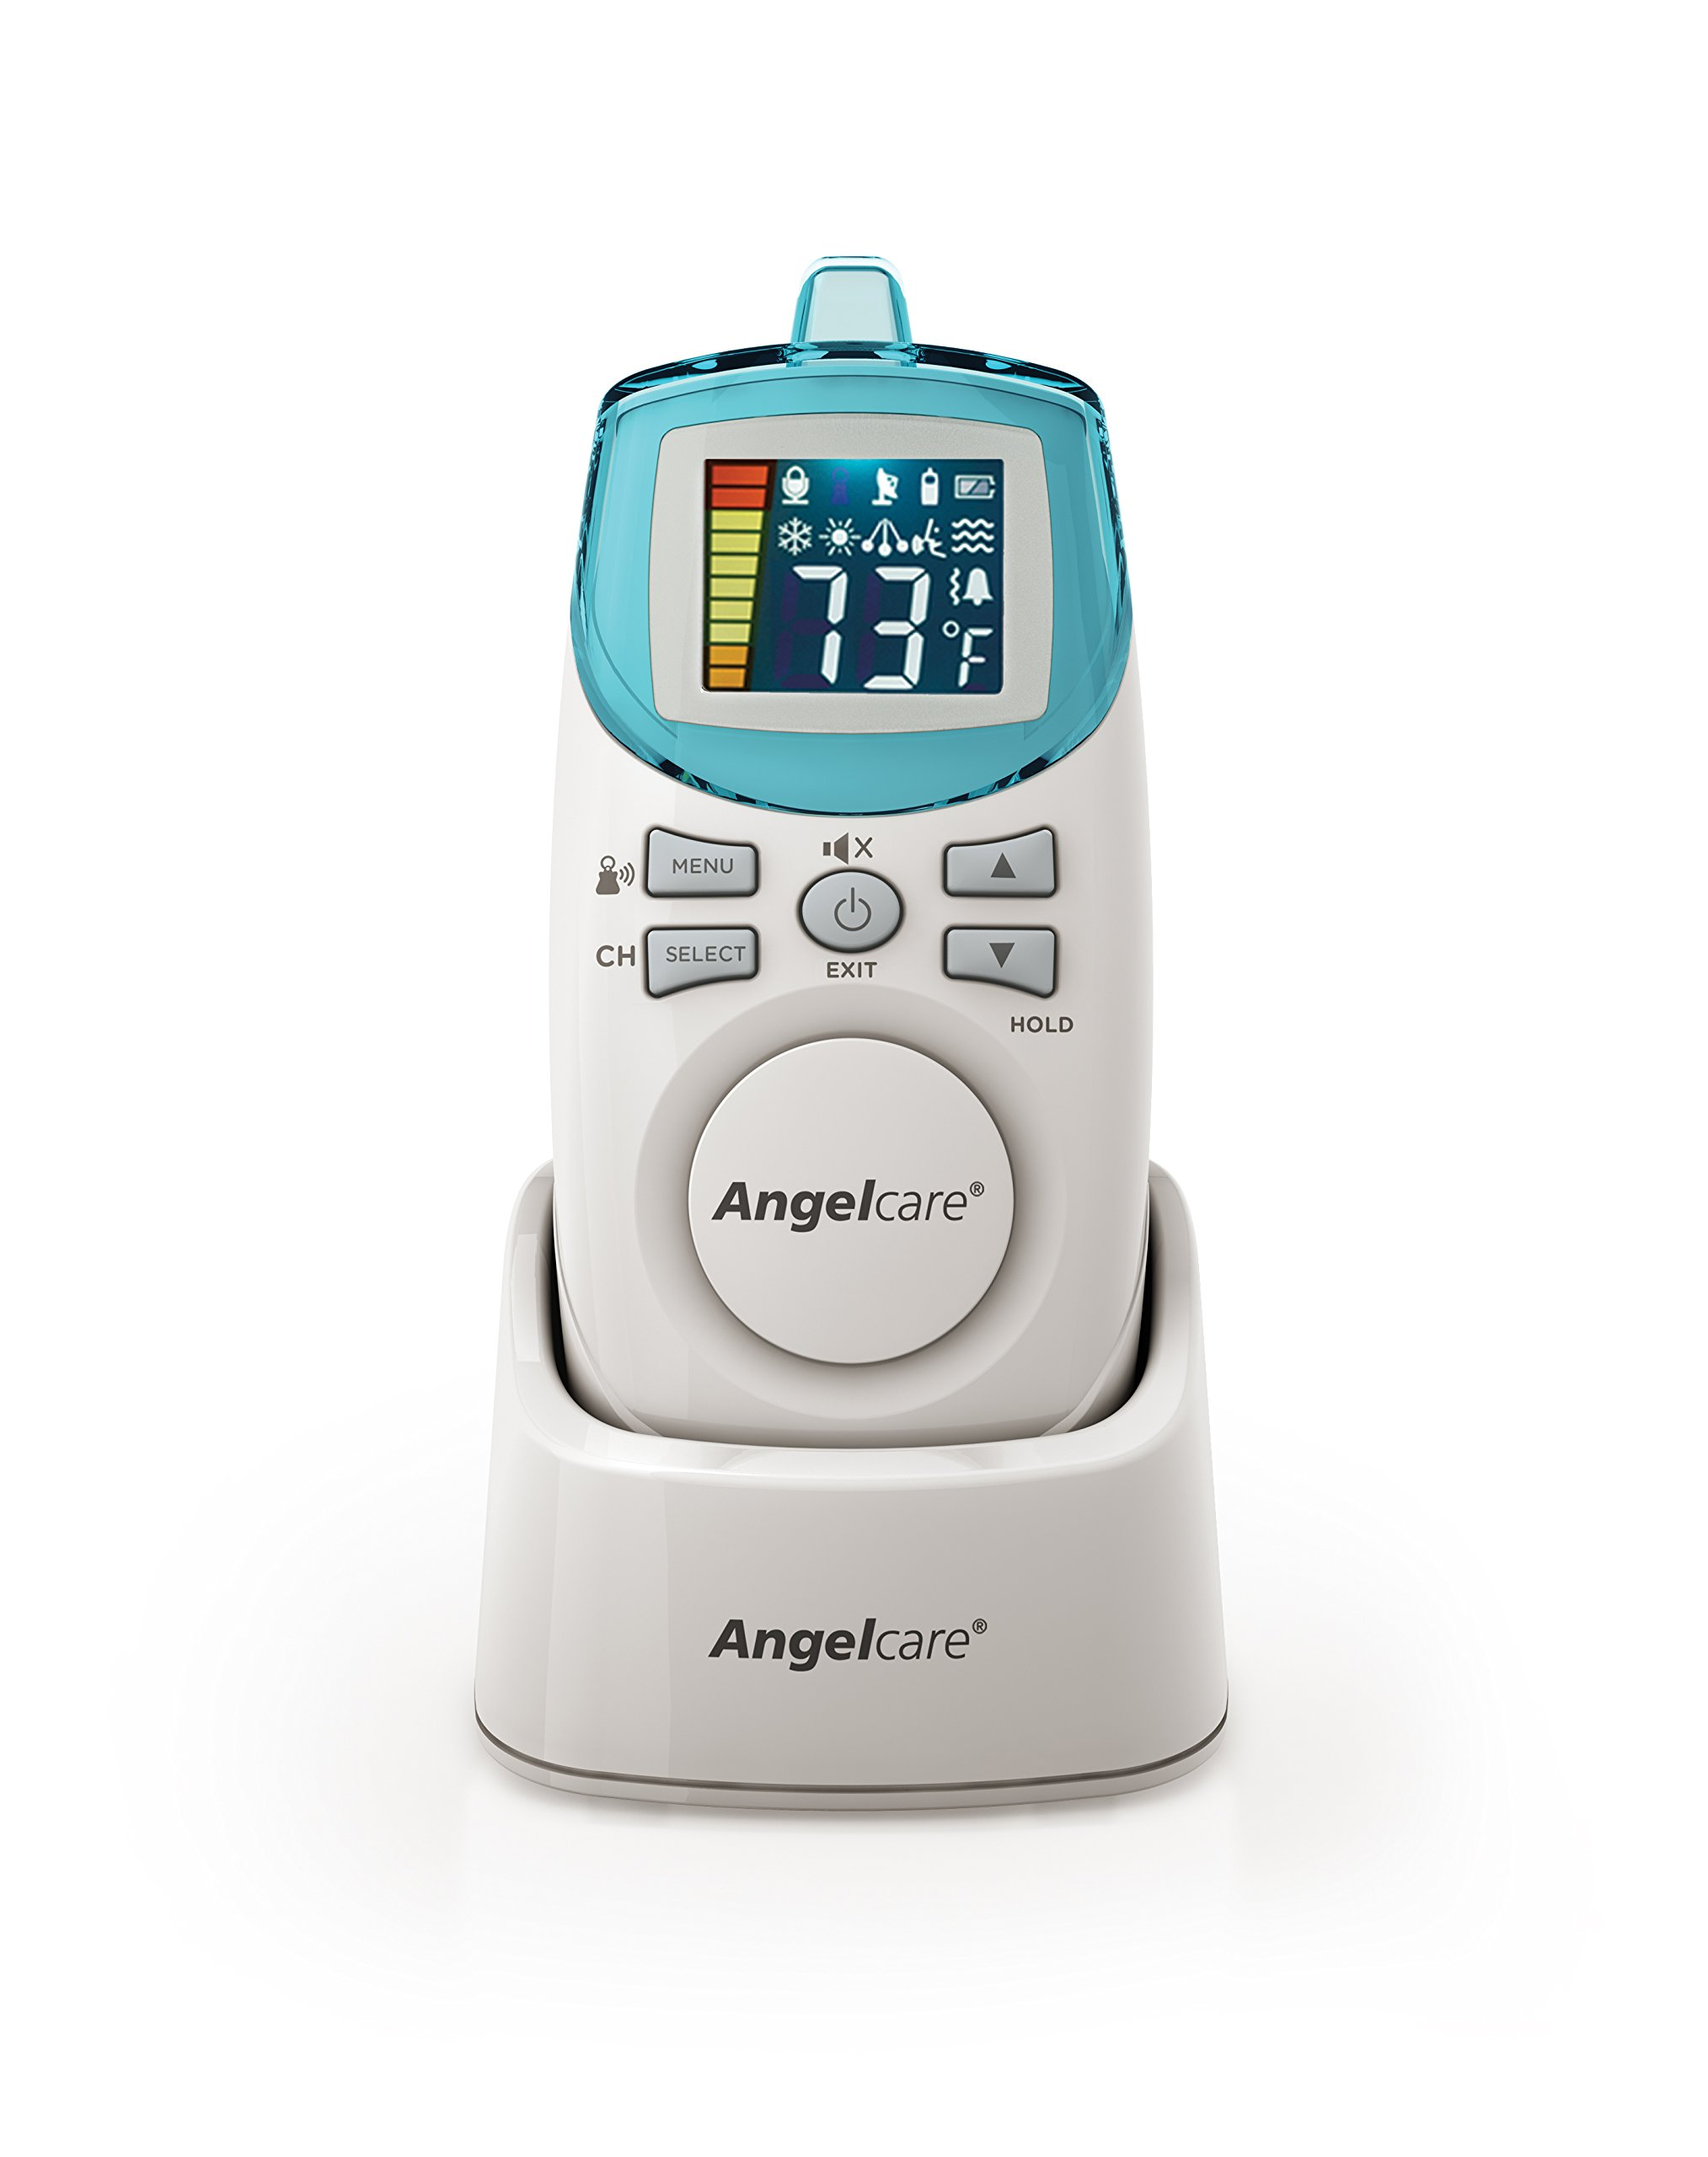 Angelcare Movement and Sound Monitor, Aqua/White by Angelcare (Image #5)